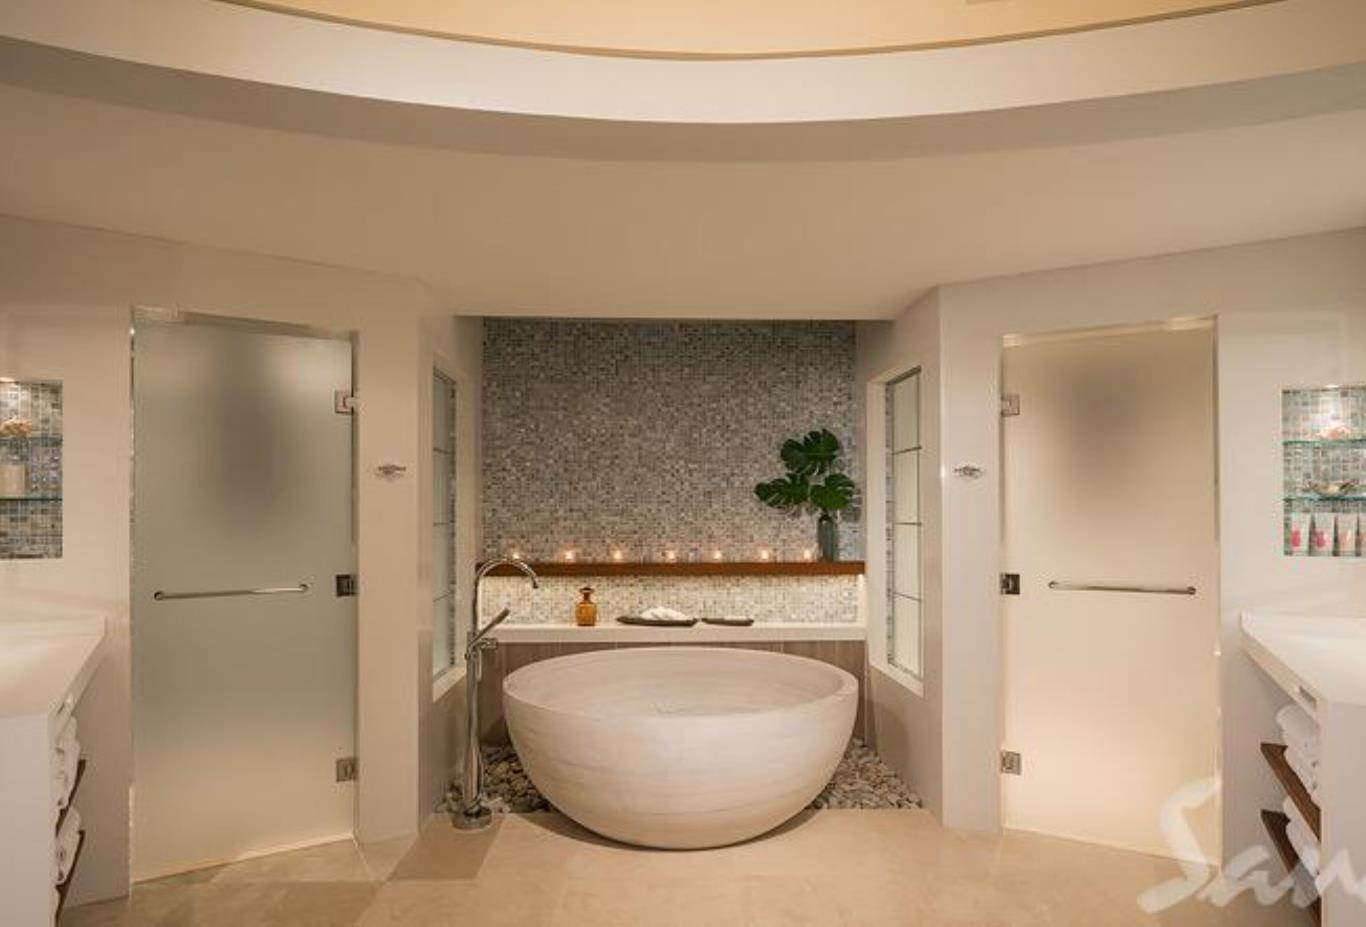 RPP South Seas Royal Rondoval Butler Suite with Private Pool Sanctuary bathroom